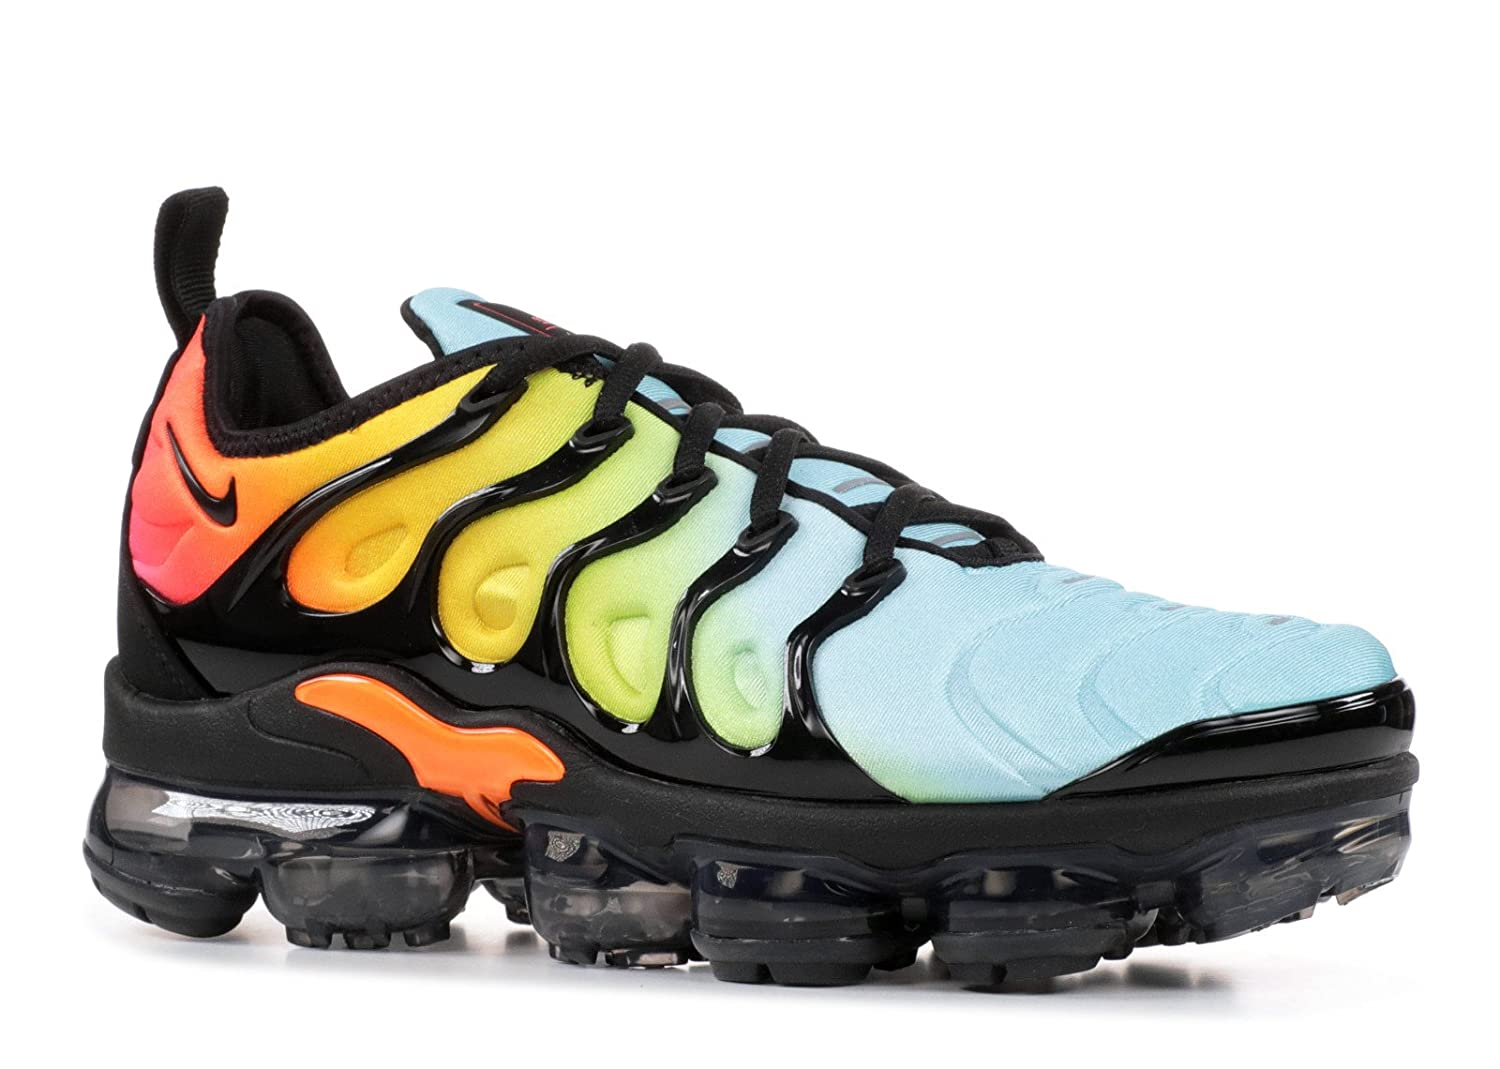 the best attitude cae76 eb6f4 Nike W Air Vapormax Plus - US 5.5W